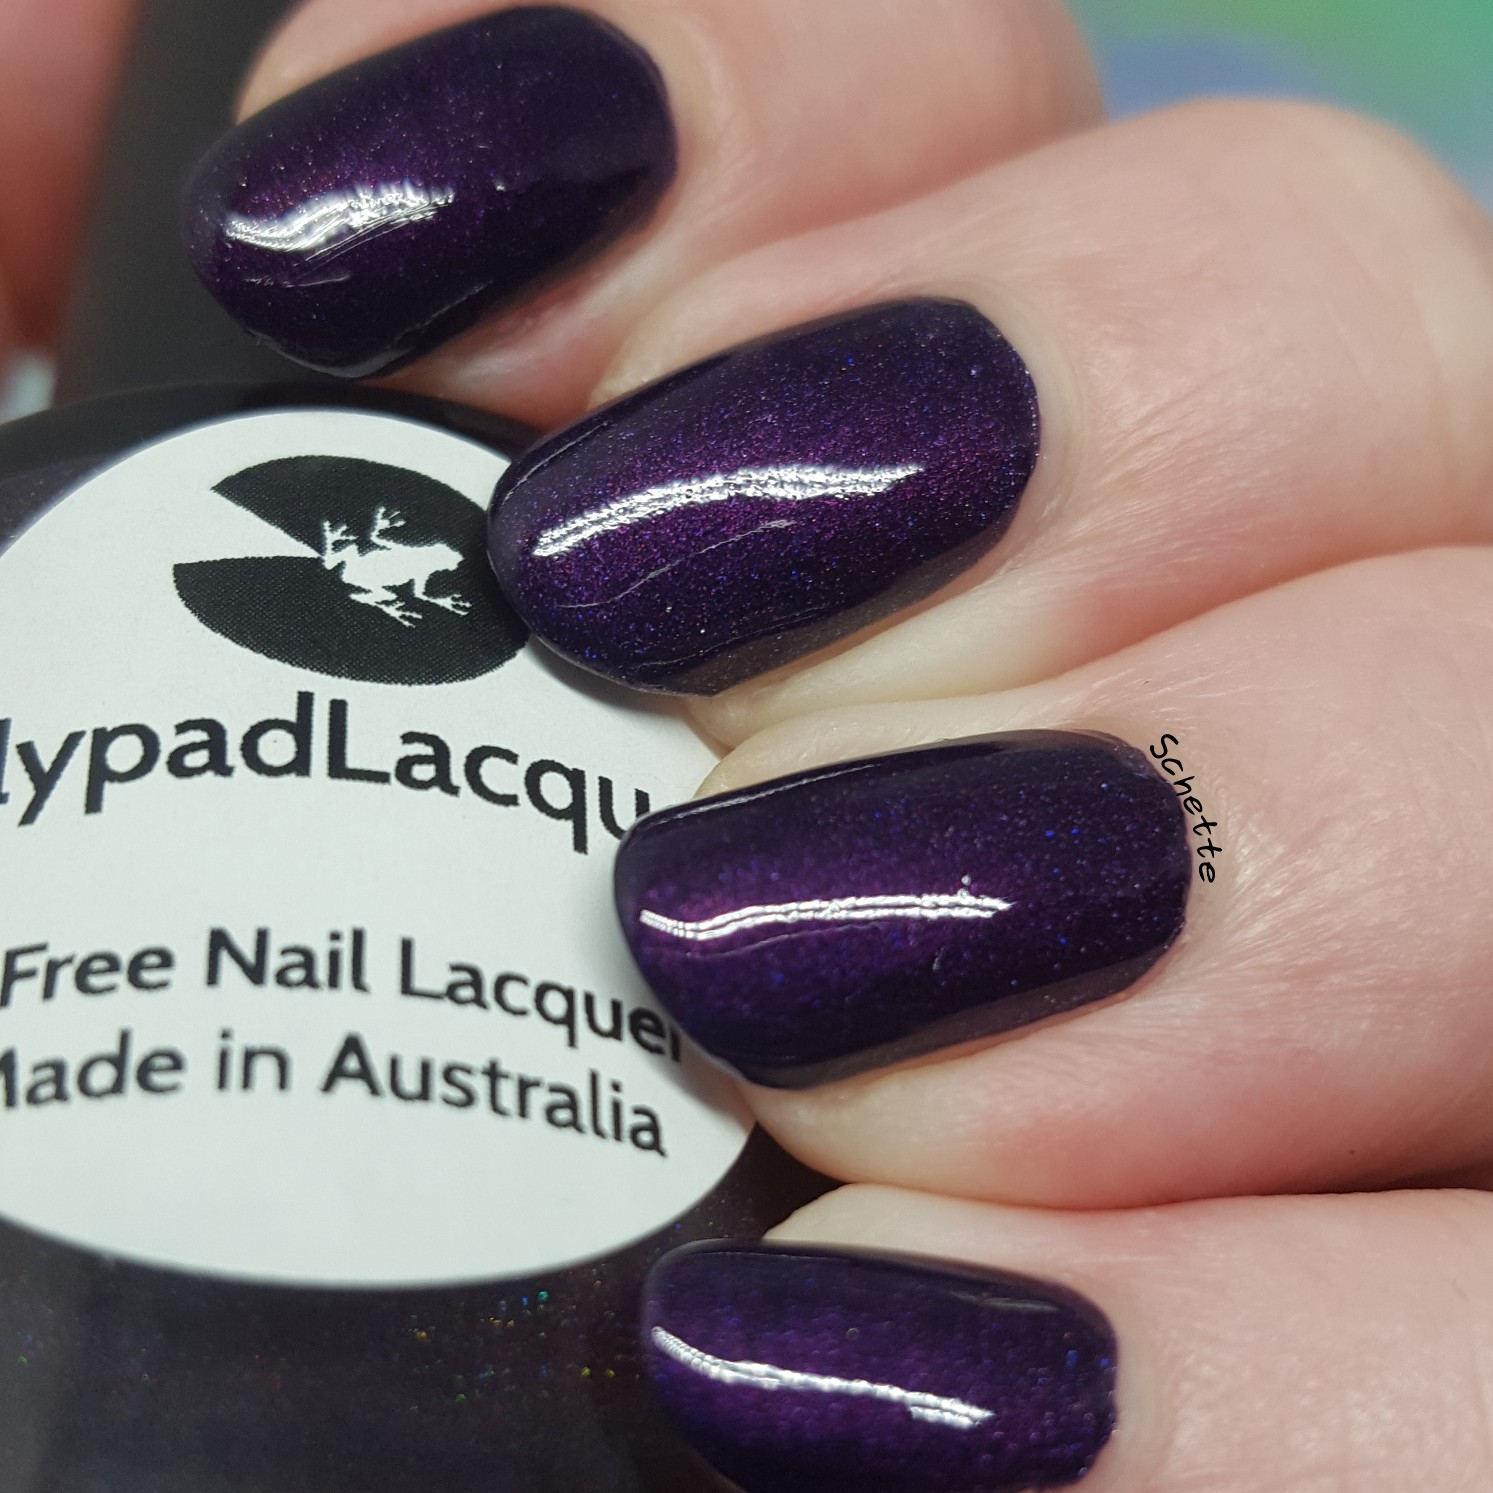 Lilypad Lacquer - Plum Pudding